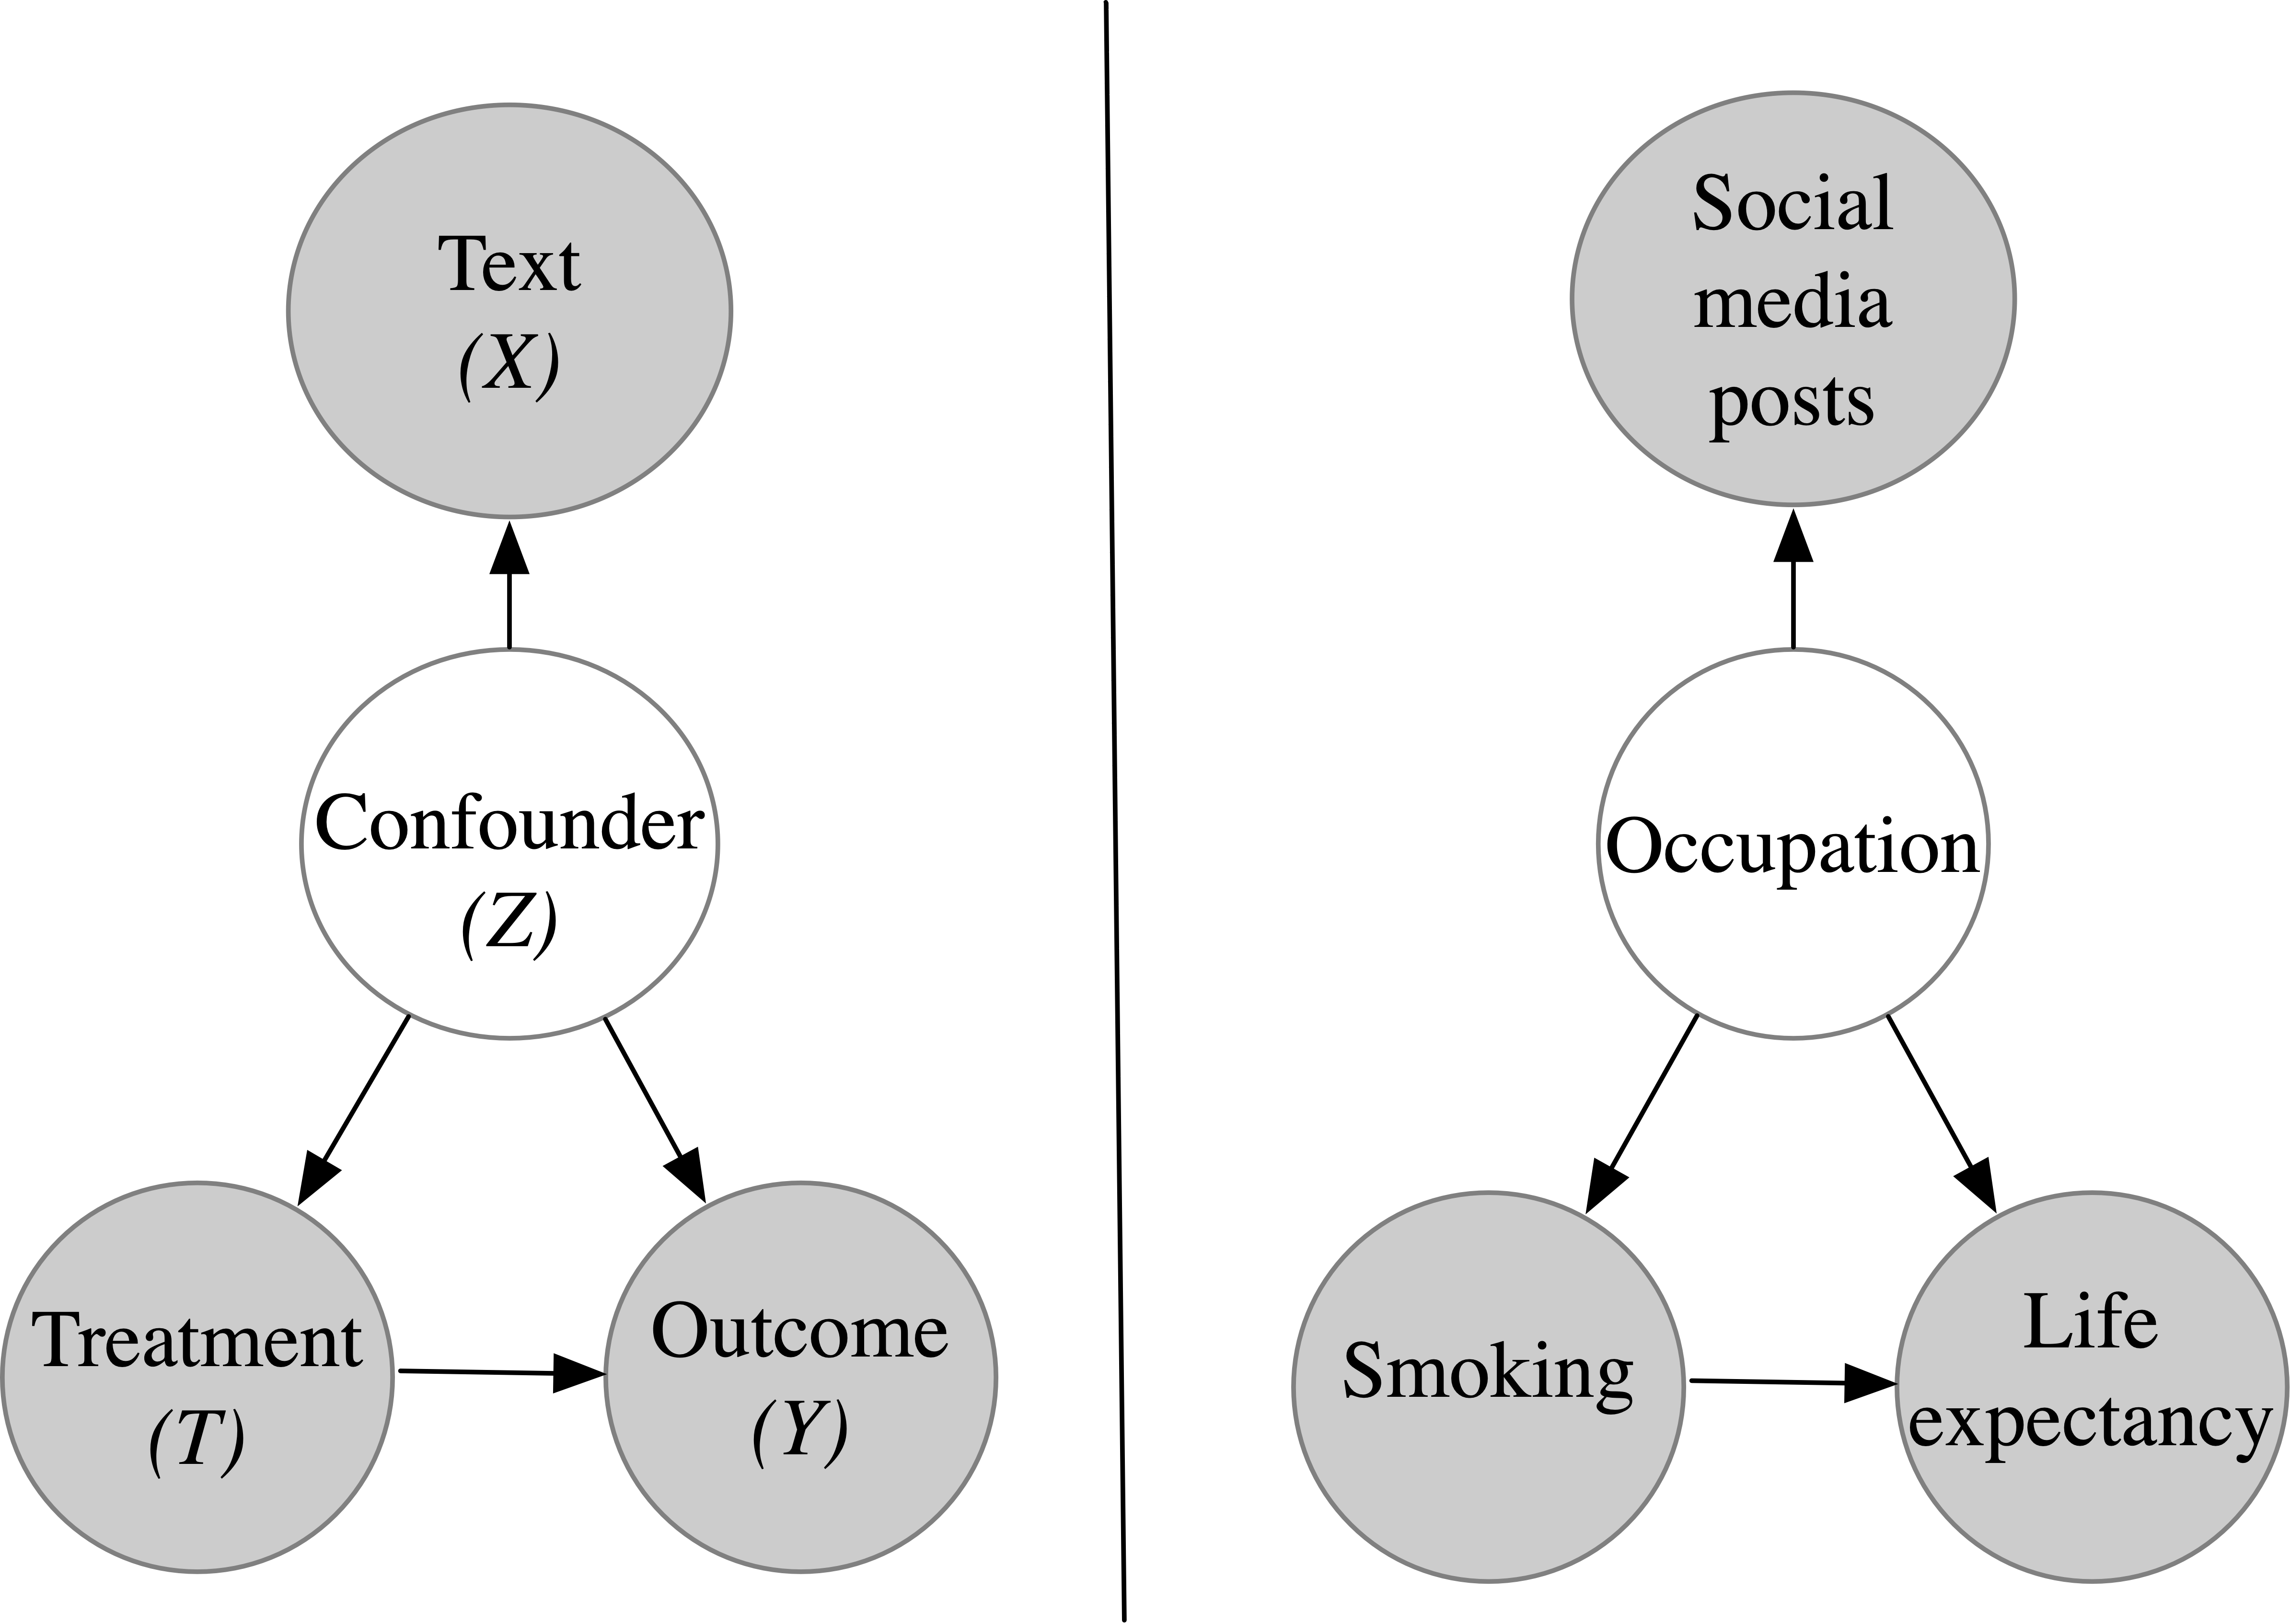 A causal diagram for text that encodes causal confounders, the setting that is focus of this review paper. The major assumption is that latent confounders can be